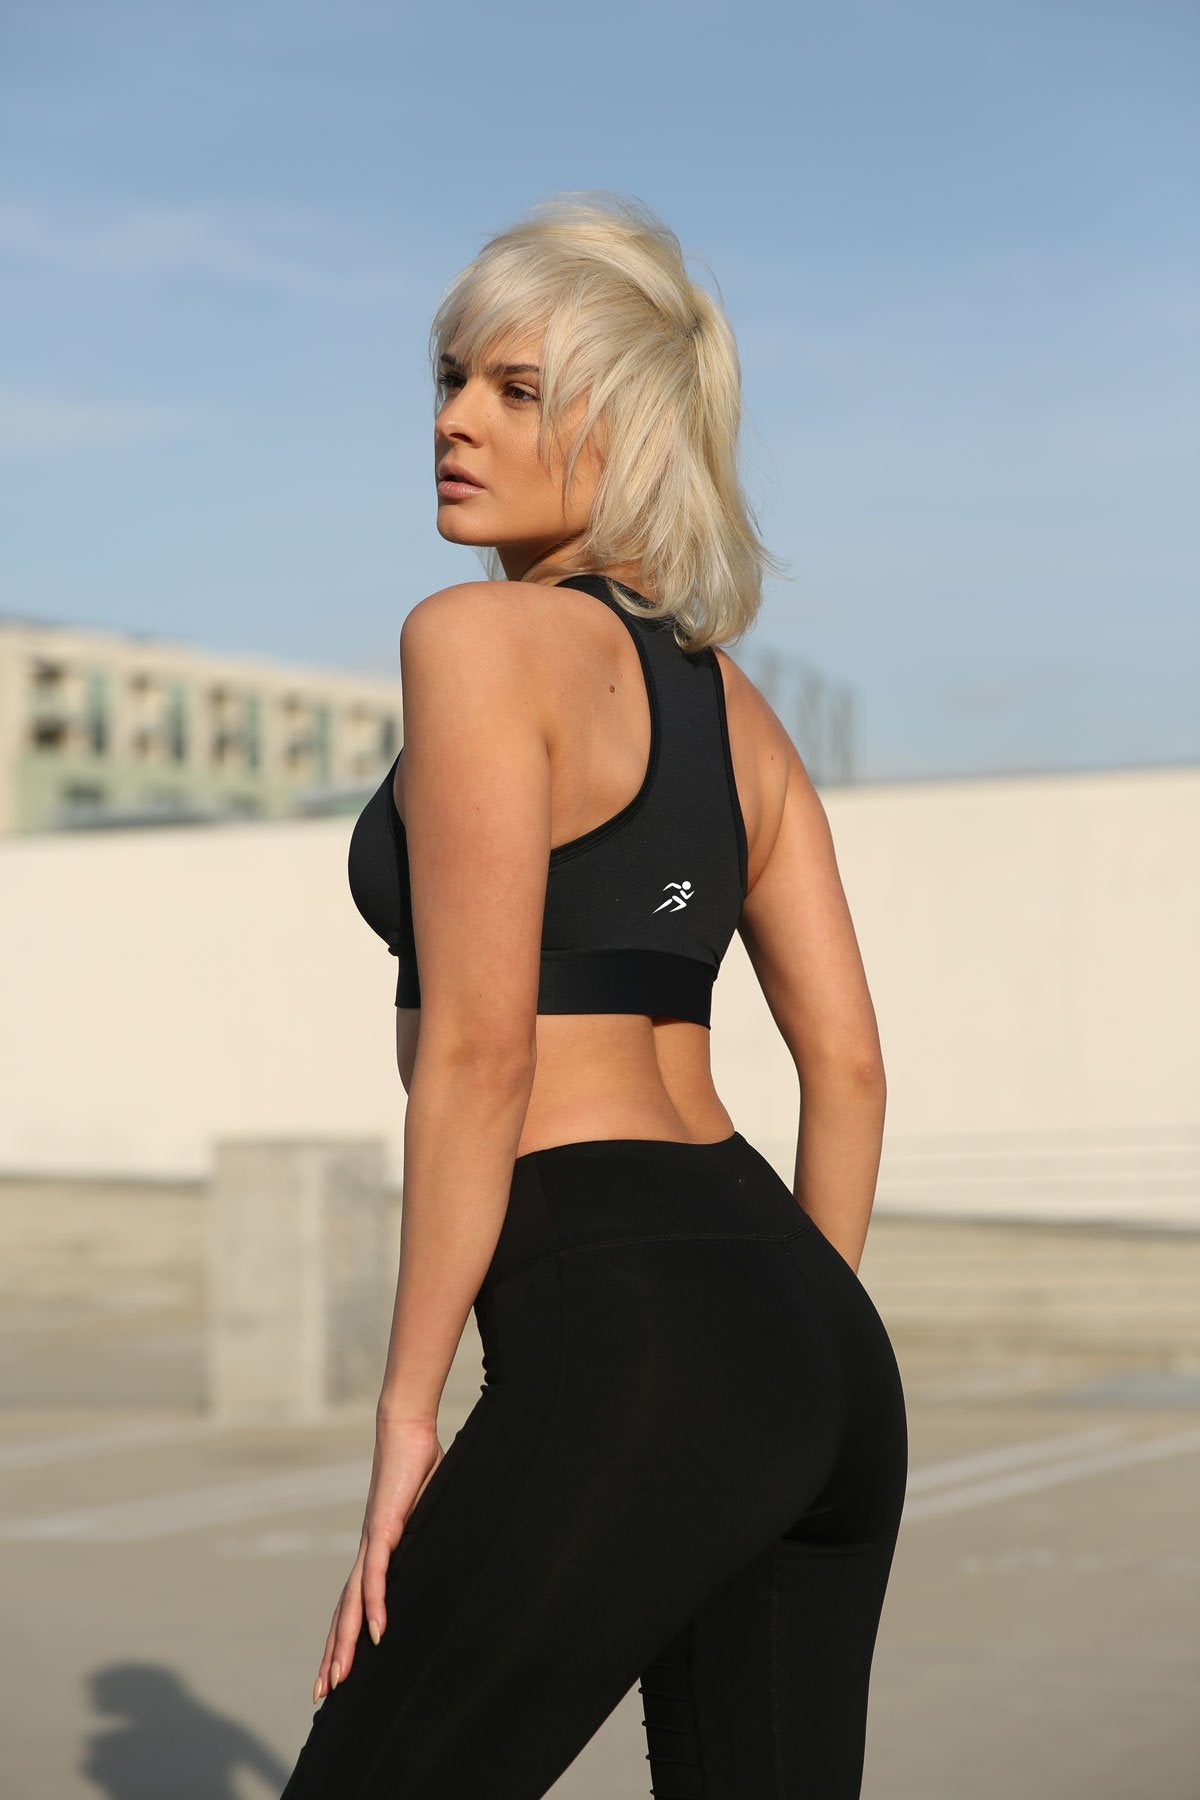 Athletique Low-Waisted Ribbed Leggings With Hidden Pocket and Mesh Panels - Black - Zip & Mos